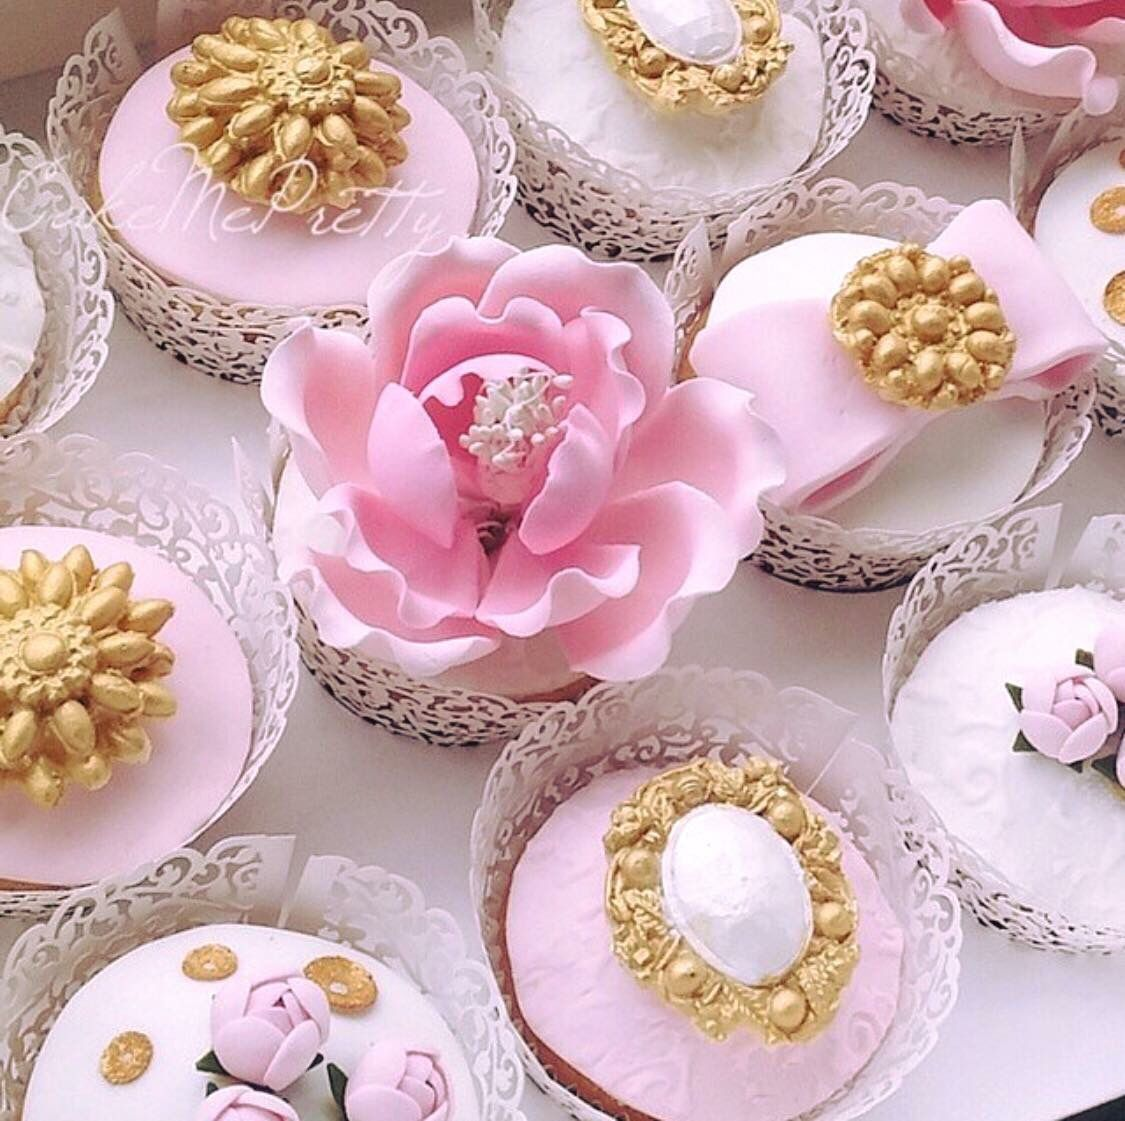 Pin by Lina N.Wakil on Pink and Gold | Pinterest | Gold